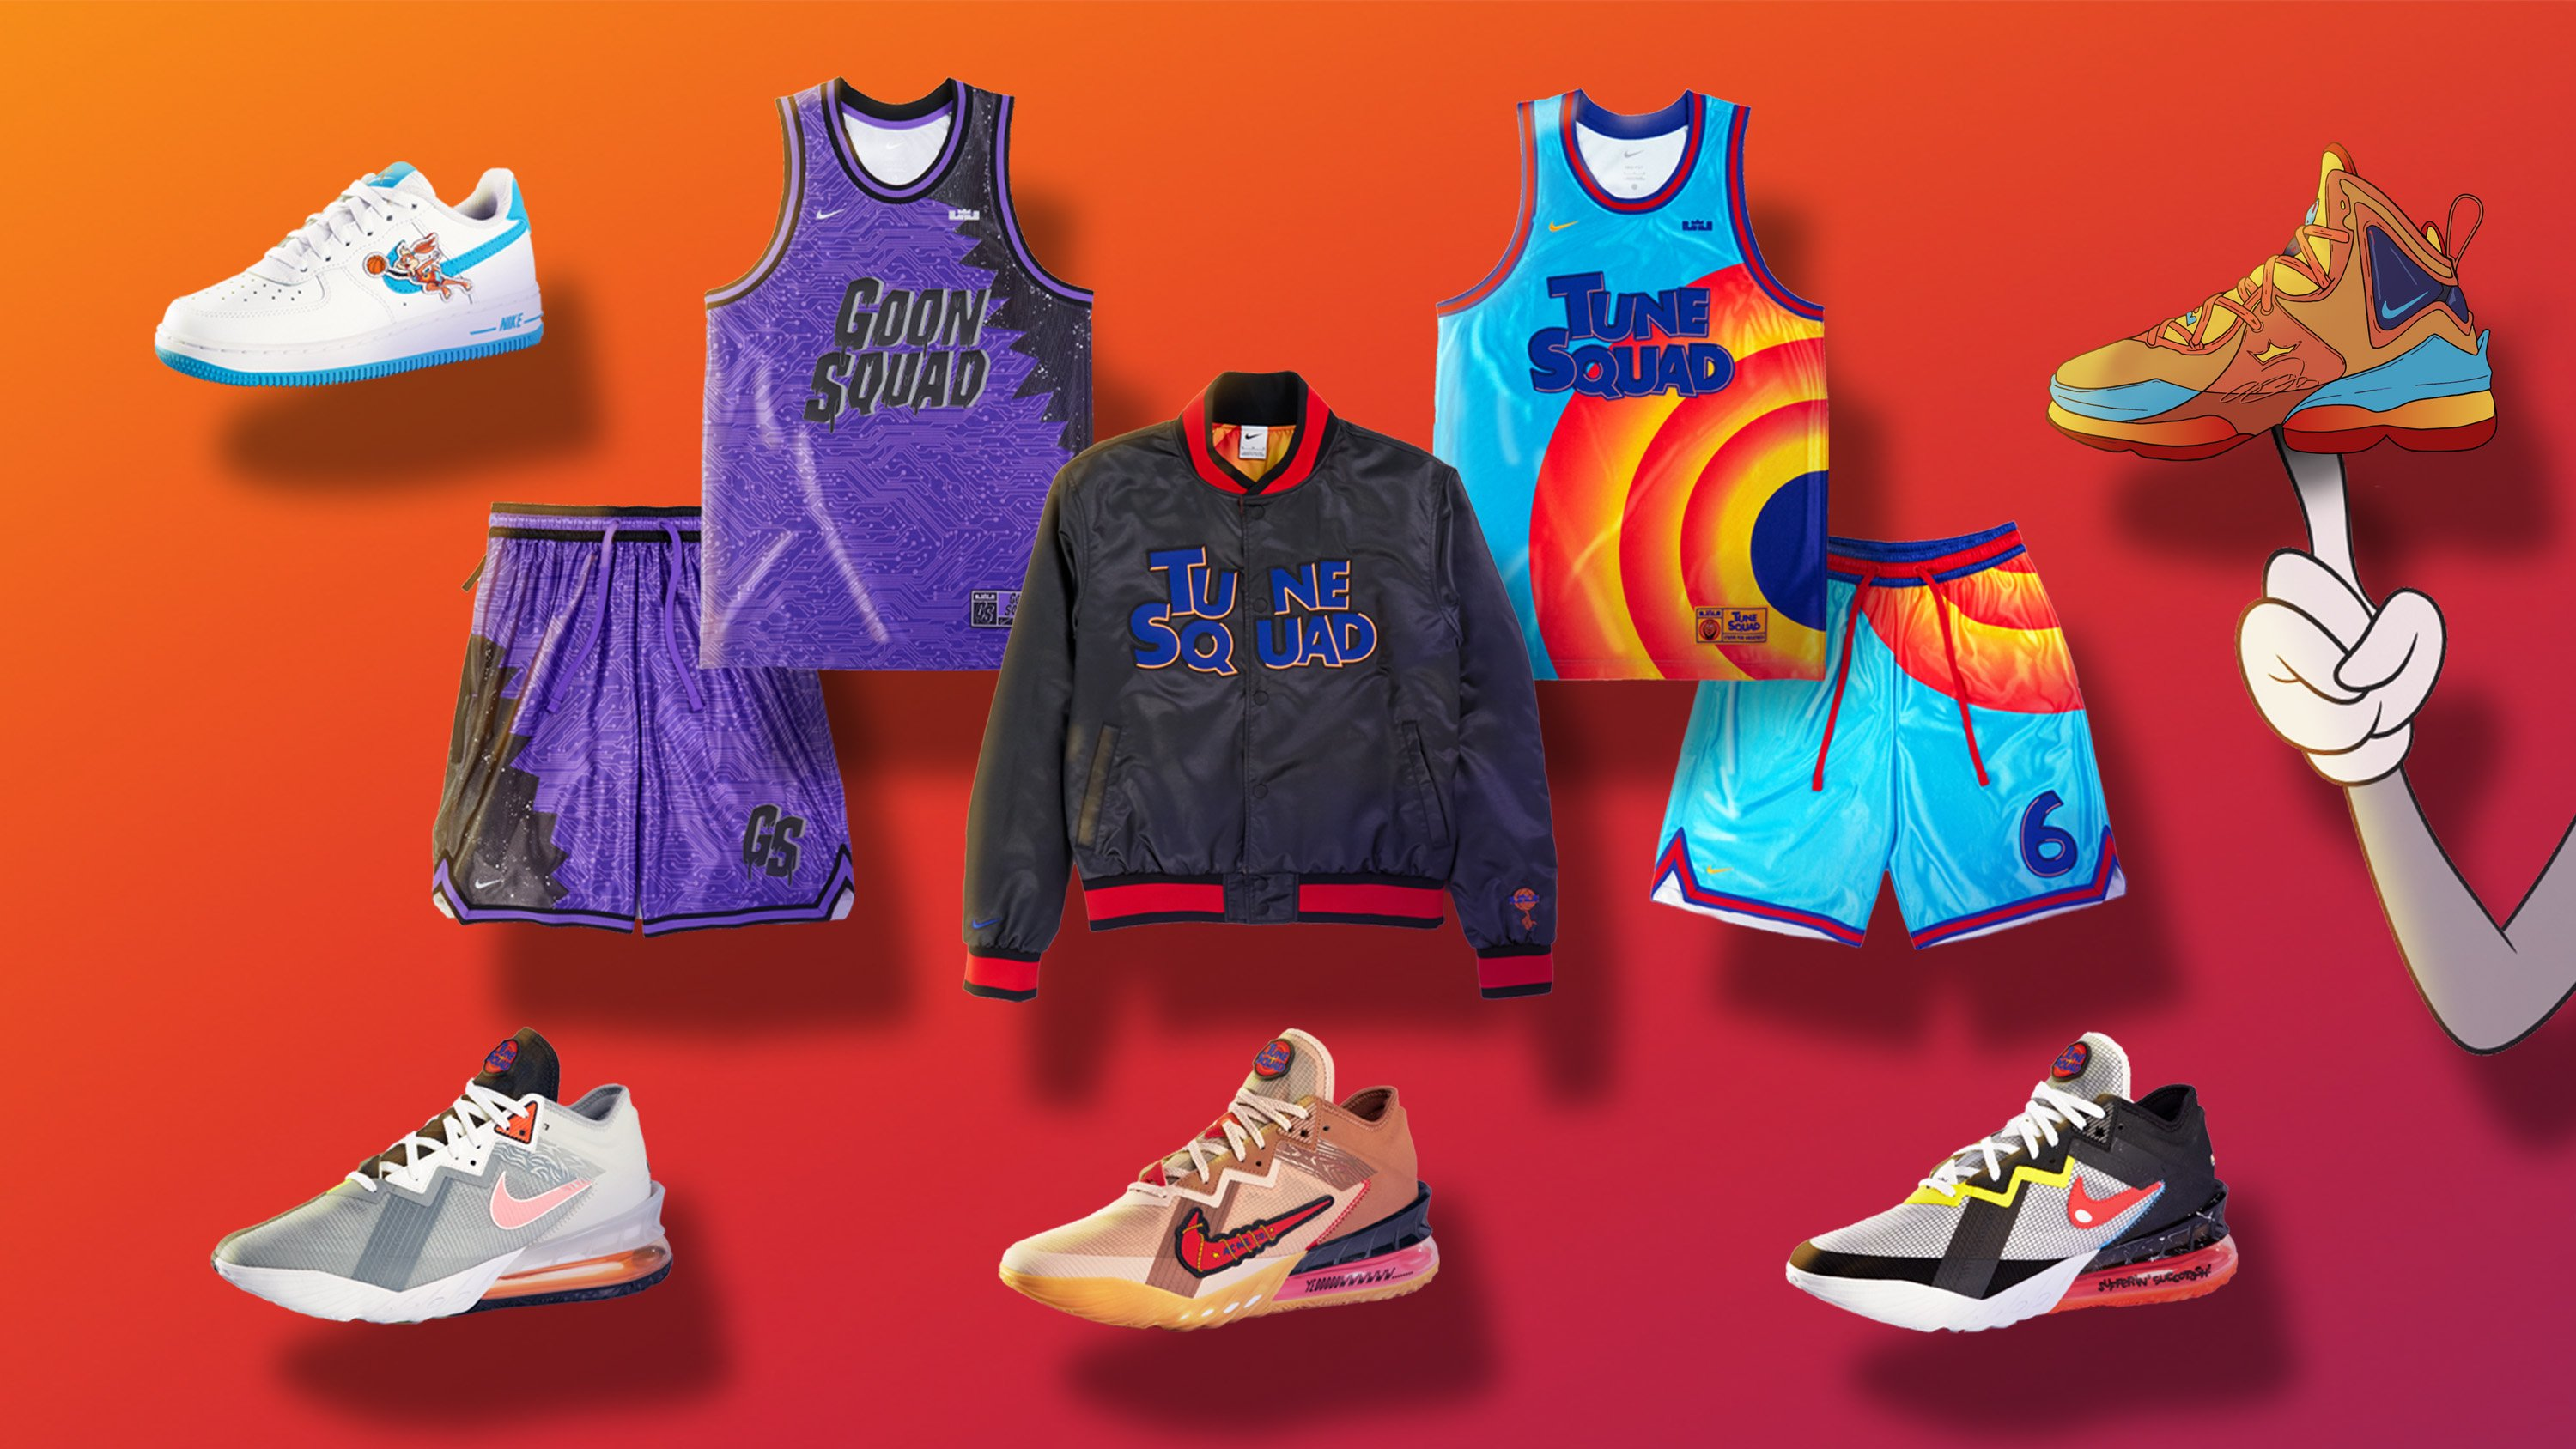 Spacejam nike collection